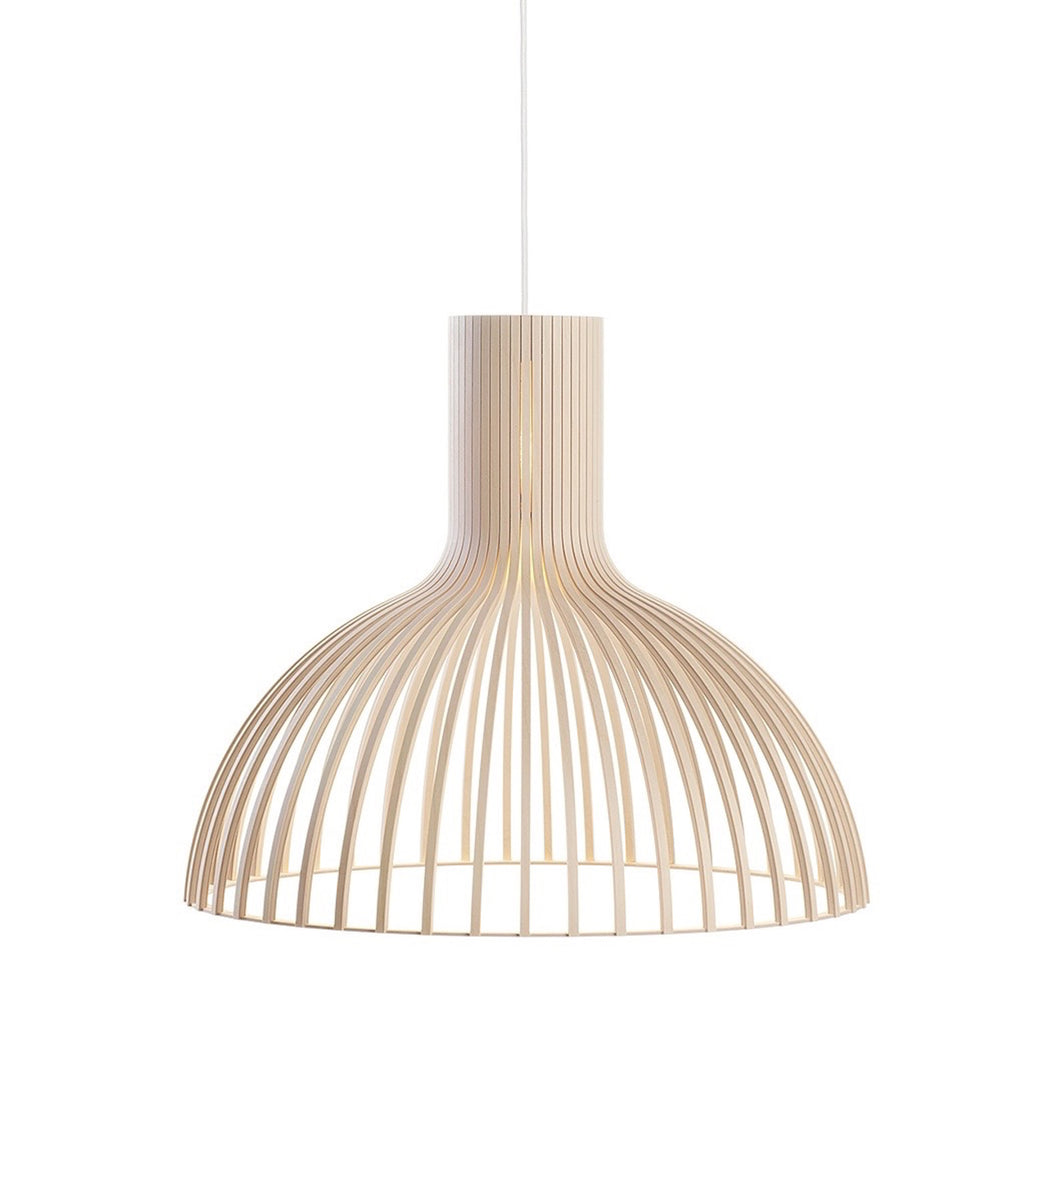 Victo 4250 Natural Birch wooden pendant Secto Design handmade contemporary lighting sustainable lights nordic Seppo Koho quality high end